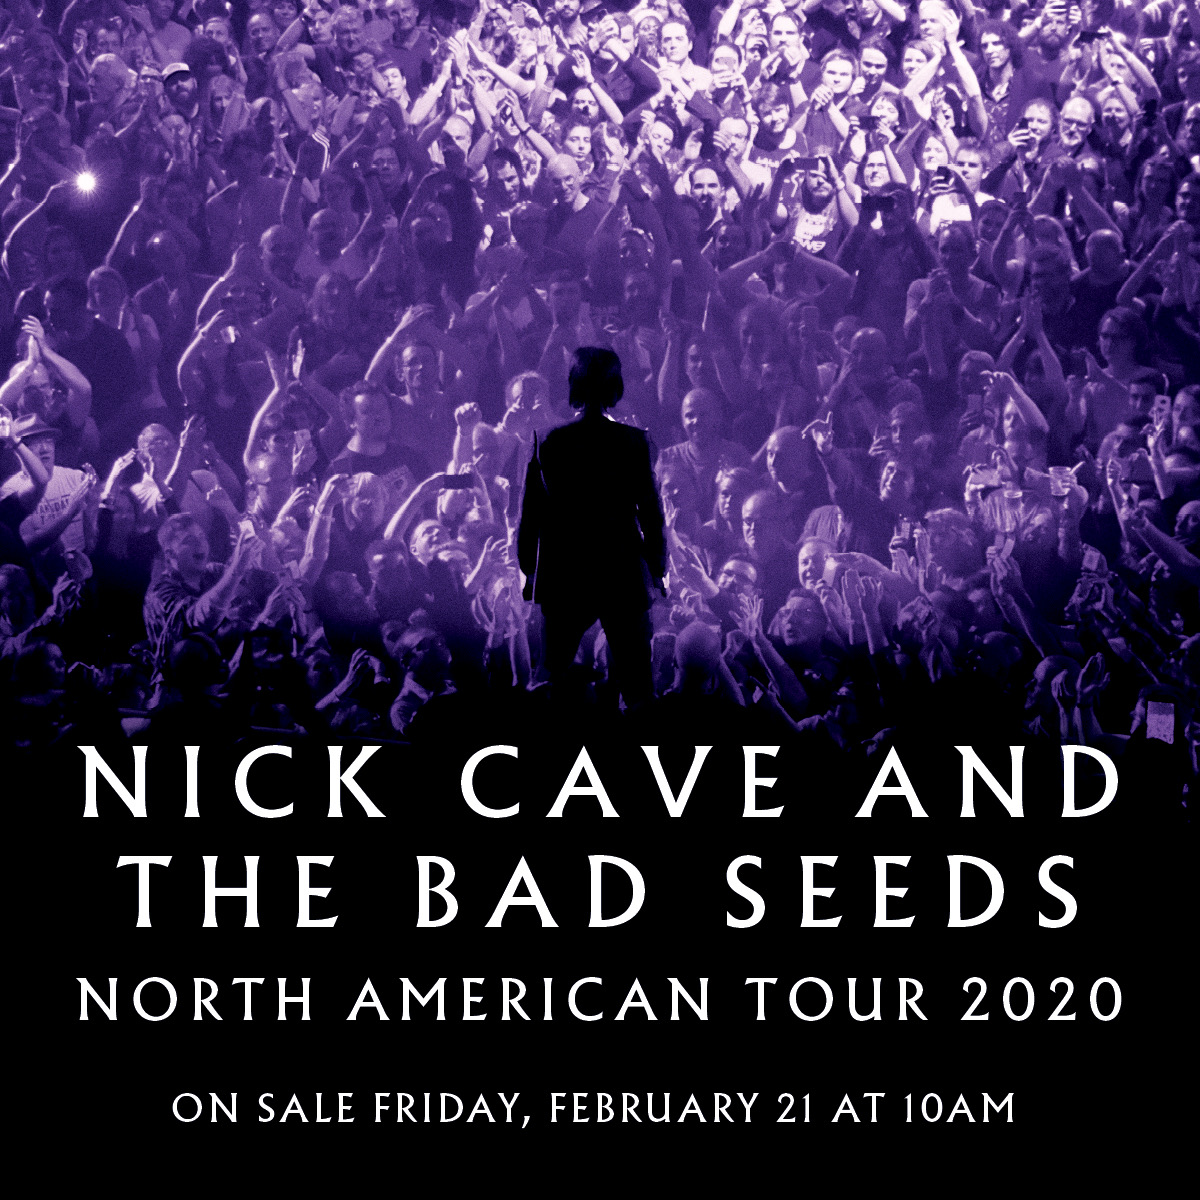 .@nickcave & The Bad Seeds coming to the @ErwinCenter on October 6. Tickets on sale Friday at 10AM.